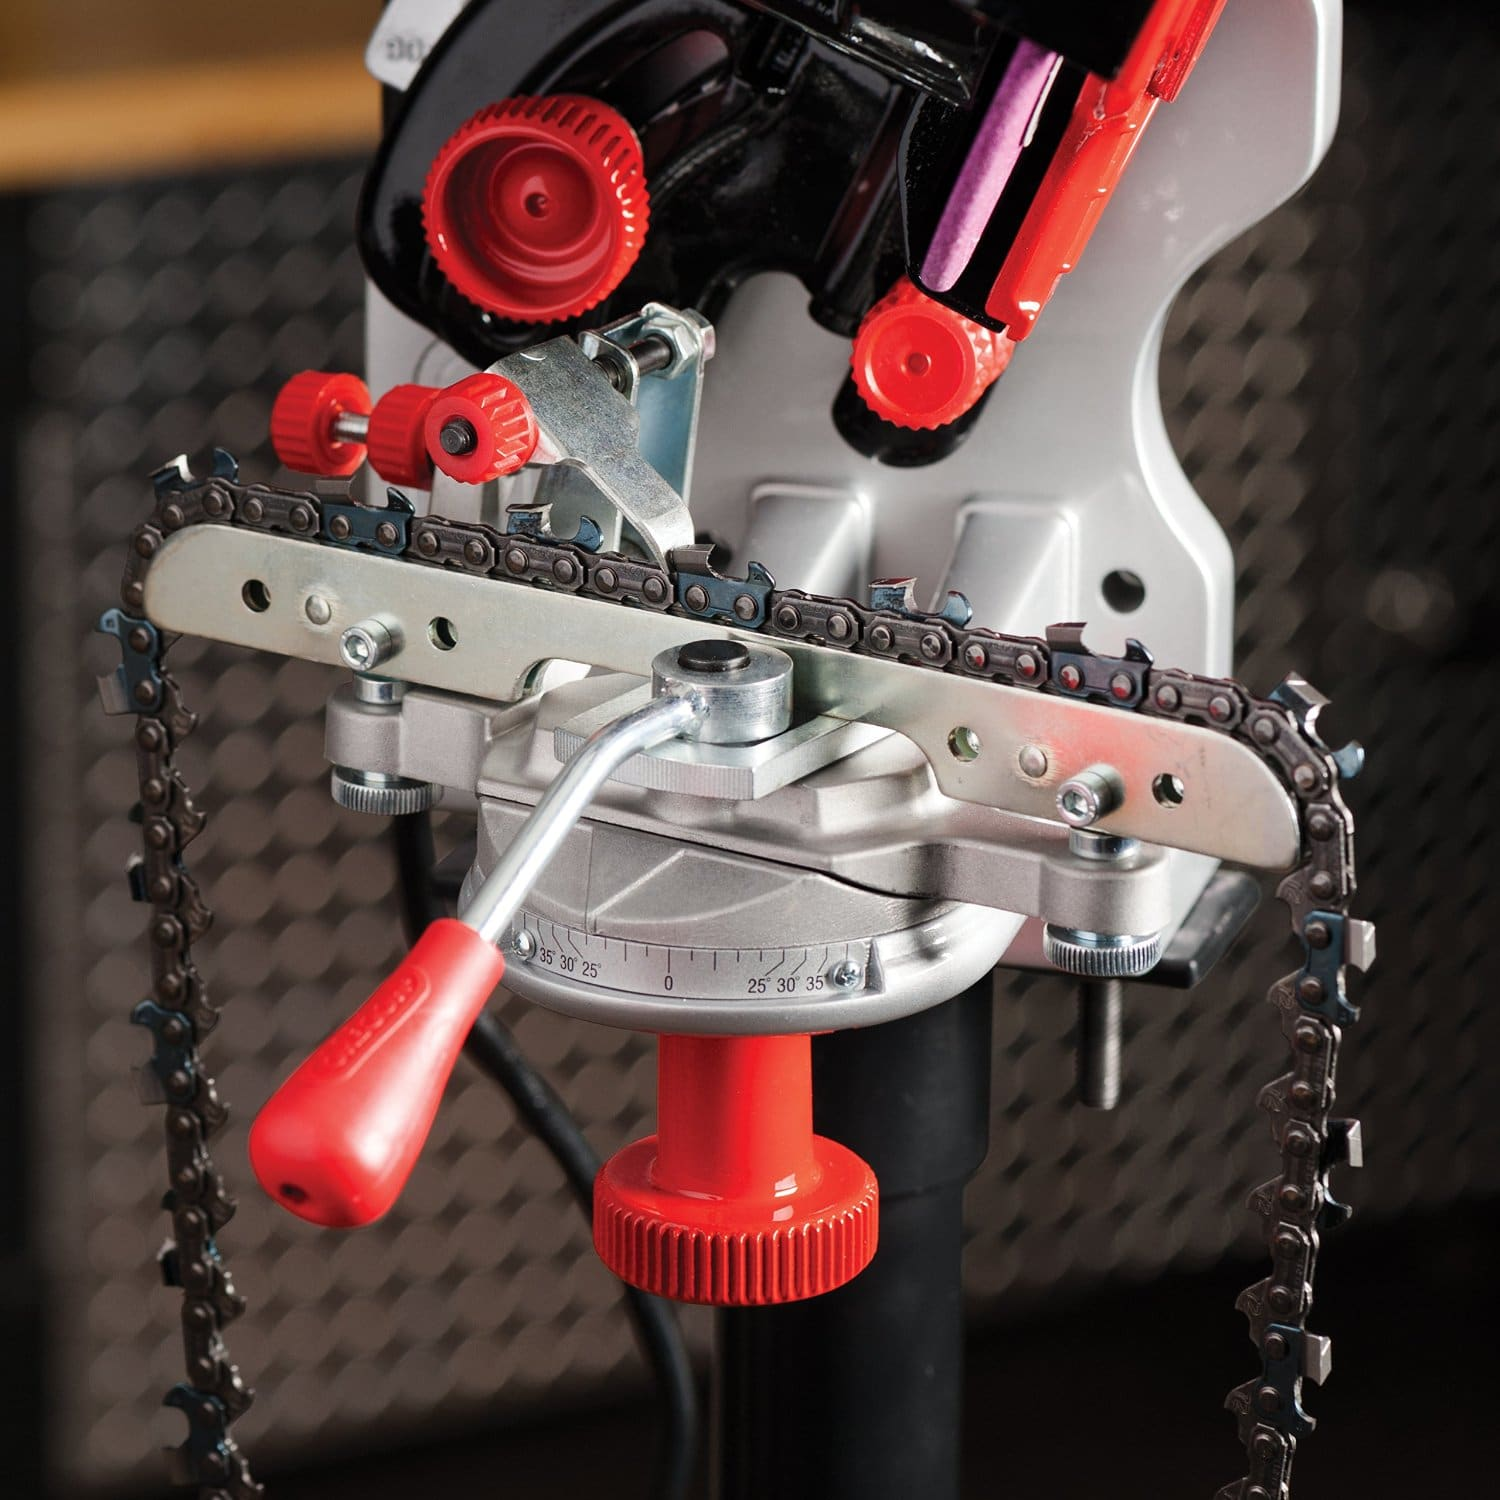 Oregon wall mounted saw chain grinder